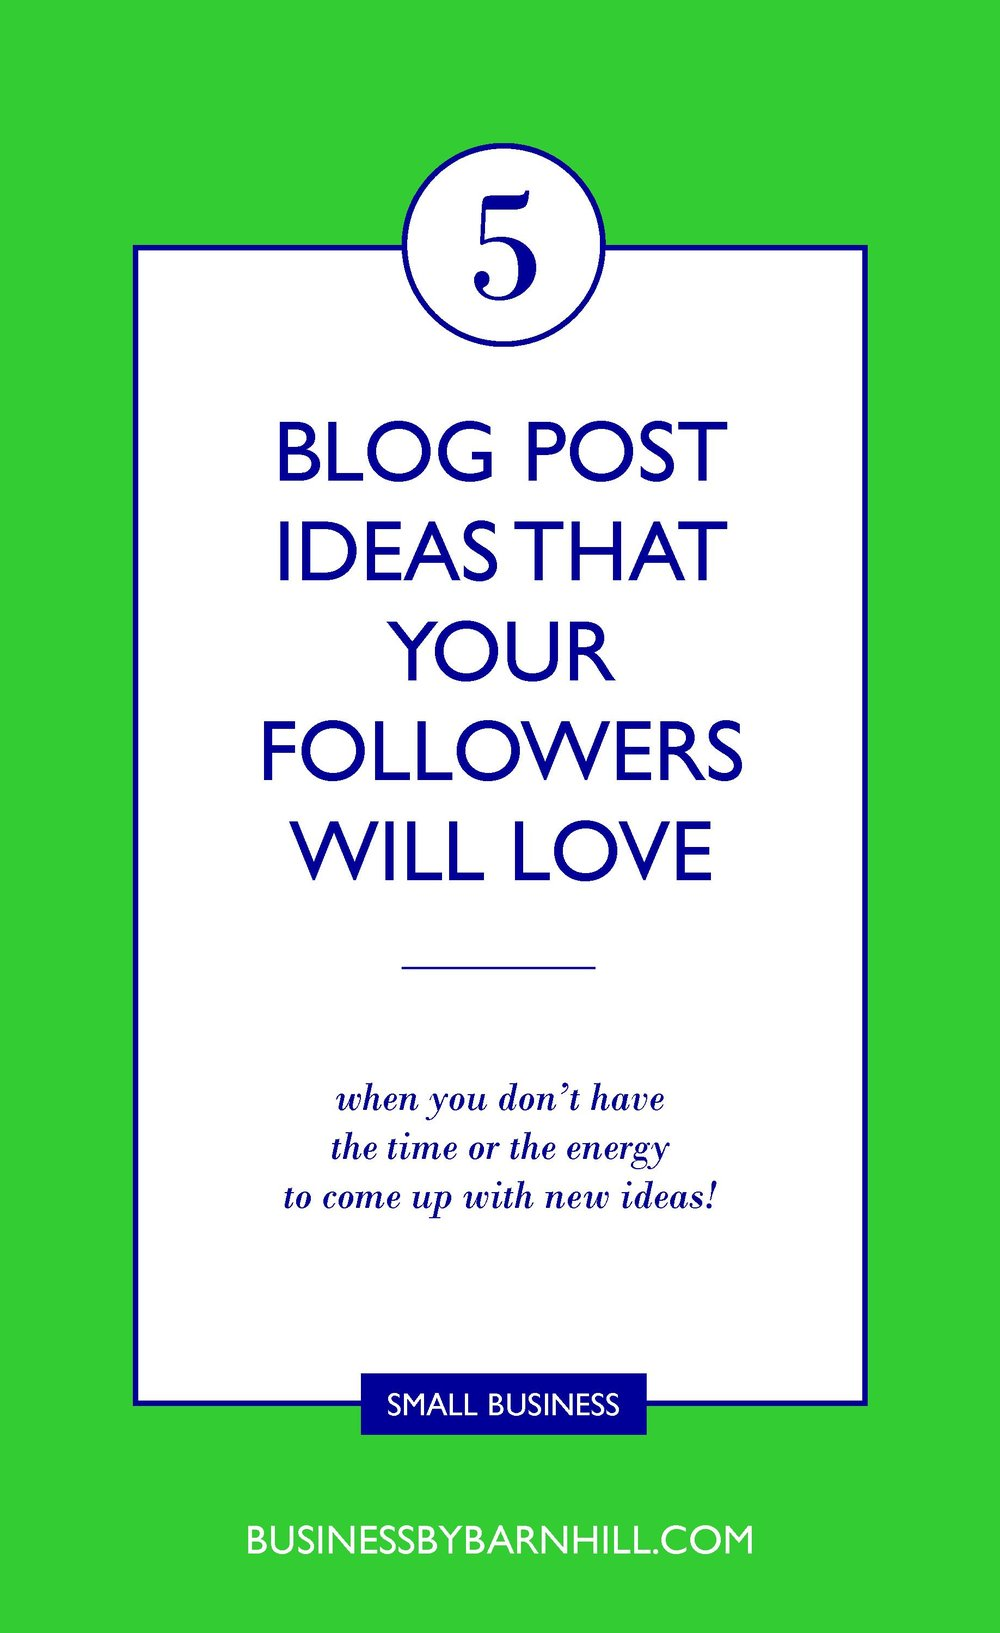 business by barnhill pinterest 5 blog post ideas that your followers will love 2.jpg